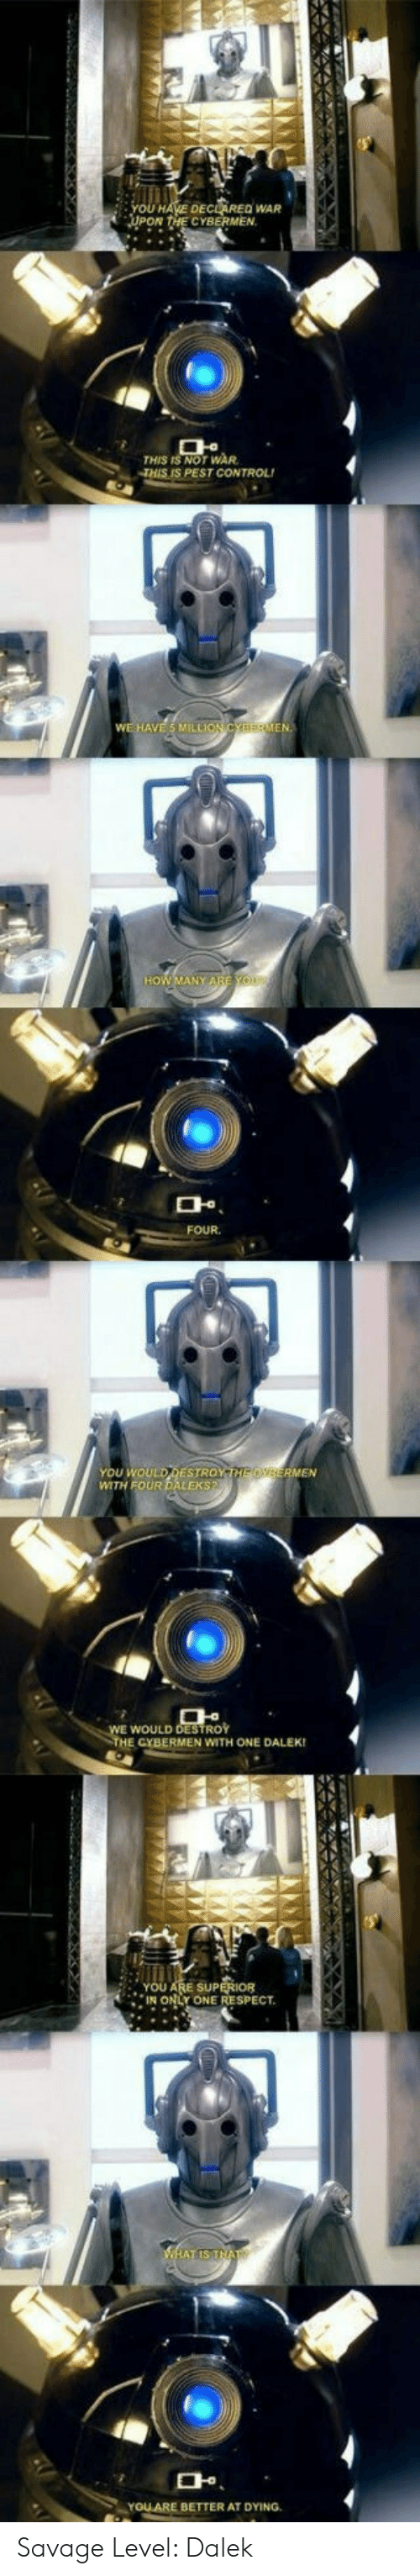 Savage Level: DEC REQ WAR  CYBERMEN.  THIS IS NOT WAR  THIS IS PEST CONTROL  머.  FOUR  YOU WOULD DESTROY  You wou  WTH FOUR DALEKS  WOULD DESTROY  THE CYBERMEN WITH ONE DALEK!  YOU ARE SUP  IN ONLY ONE RESPECT  며  YOLARE BETTER AT DYING. Savage Level: Dalek